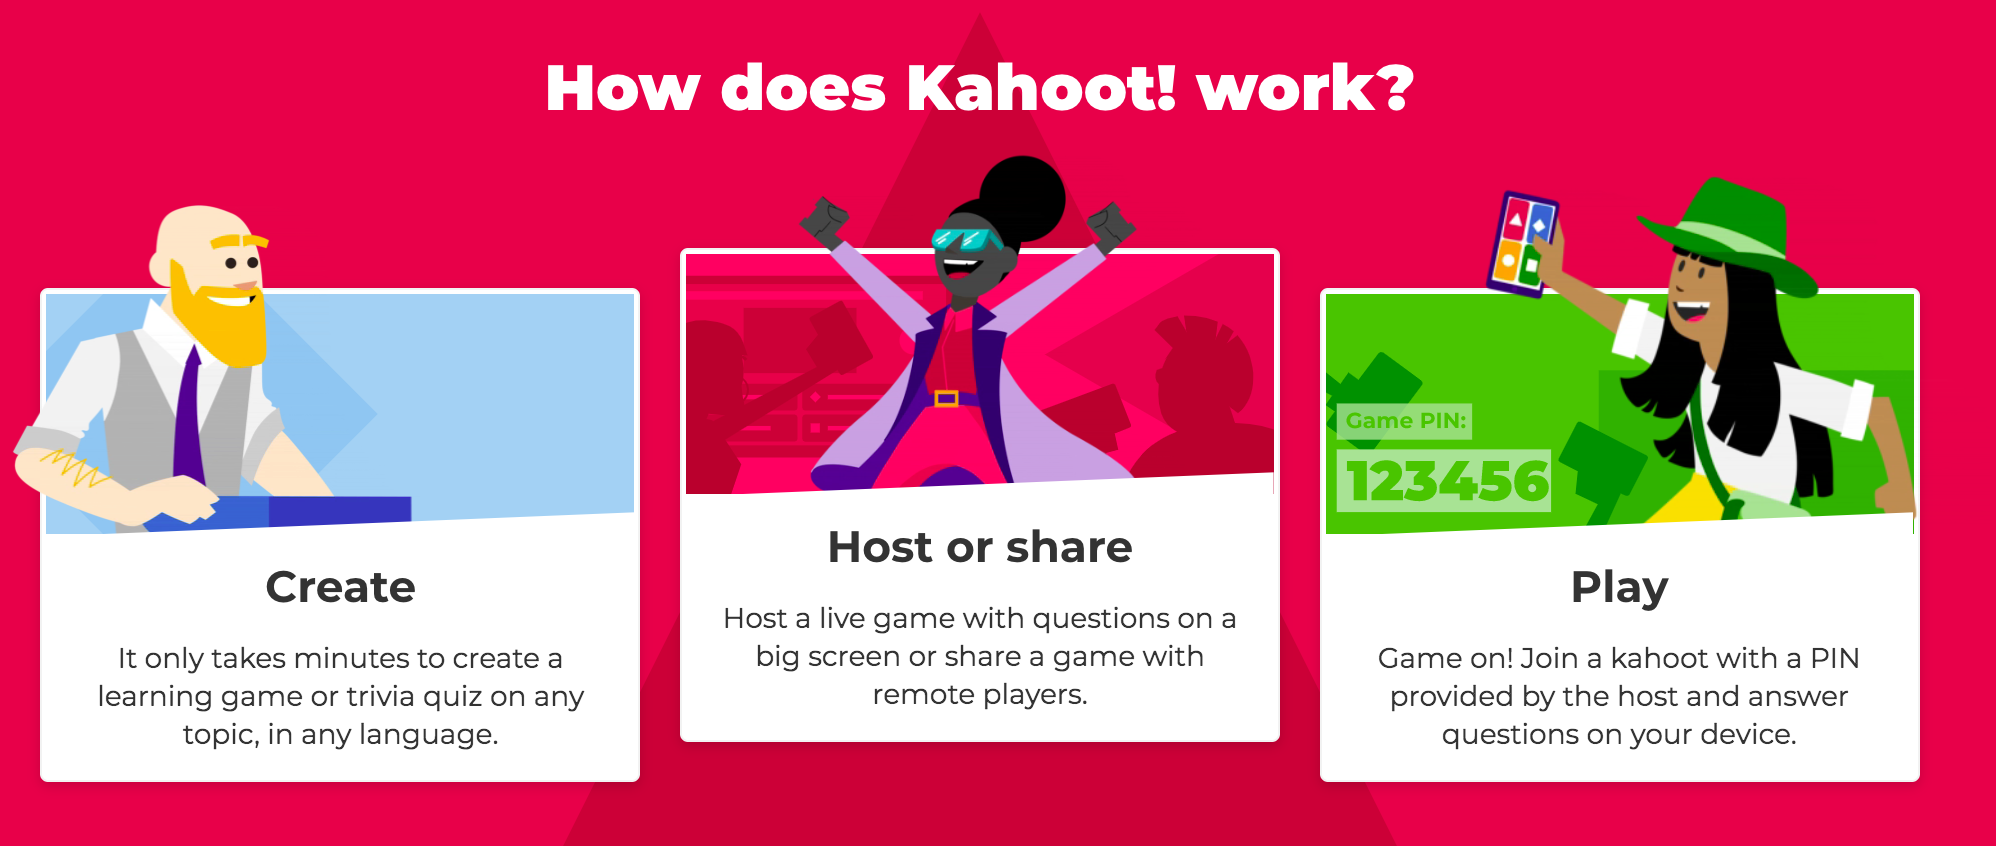 Kahoot A Great Online Fun And Learning Activity Scout Share Where New Adventure Starts